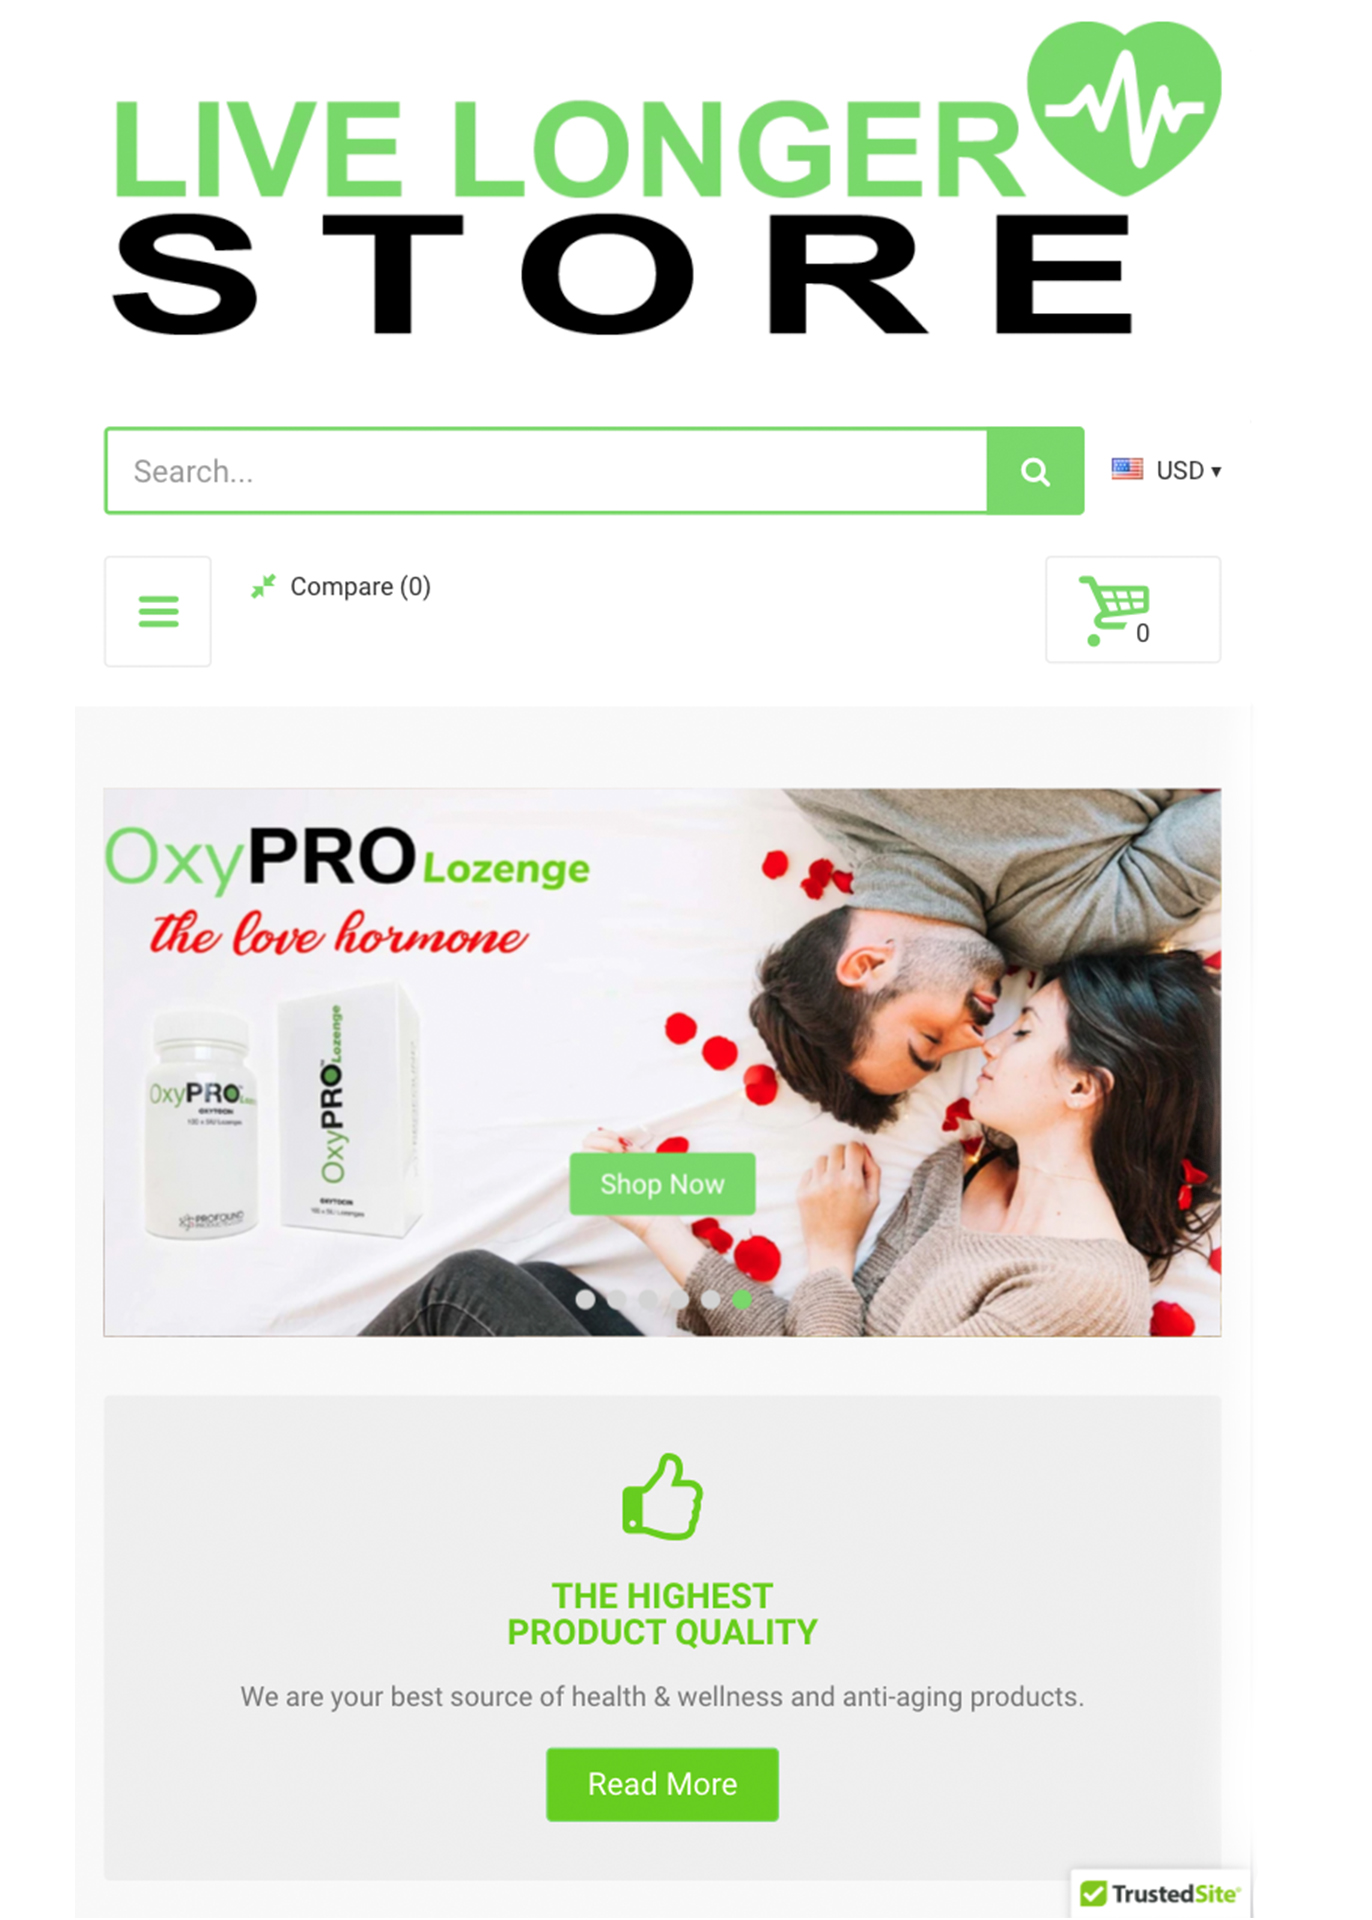 livelongerstore website